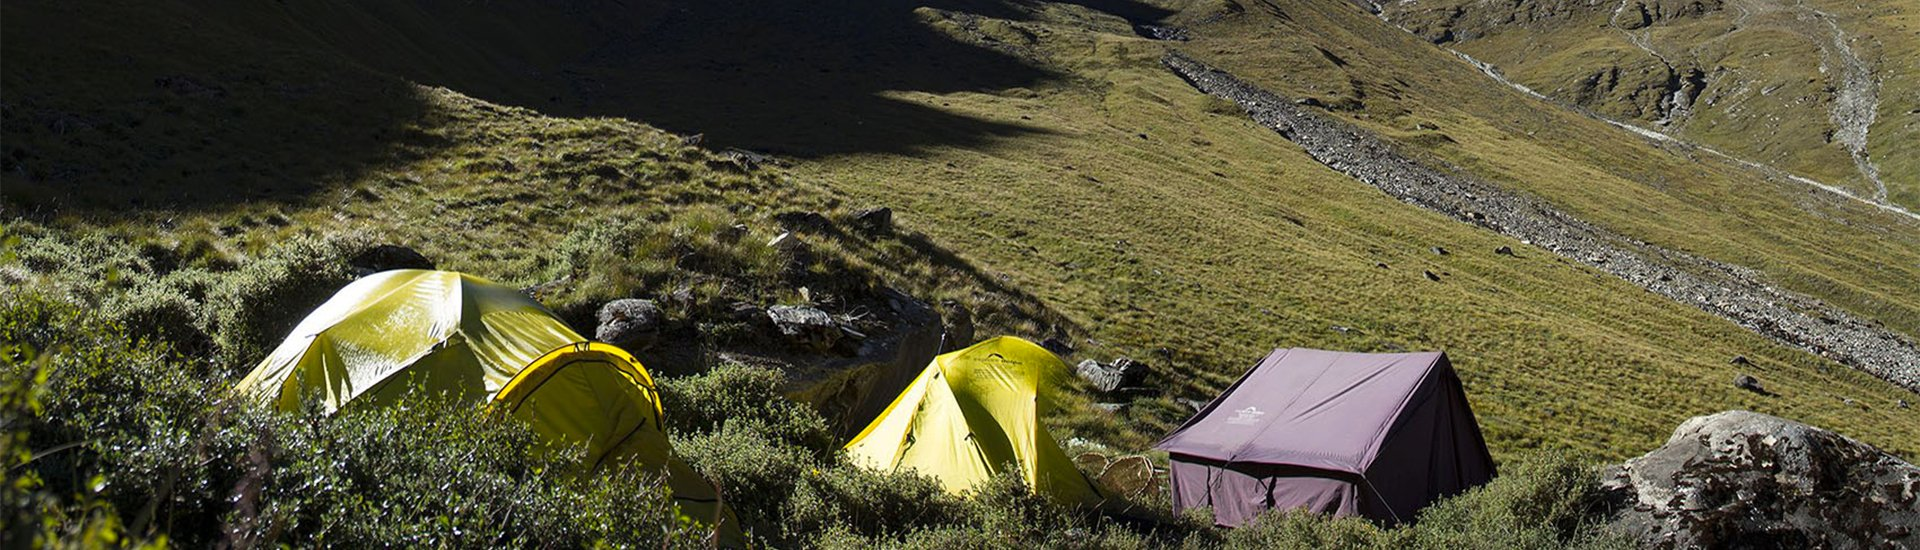 Ghyakuchin Lake Photography Trek Image